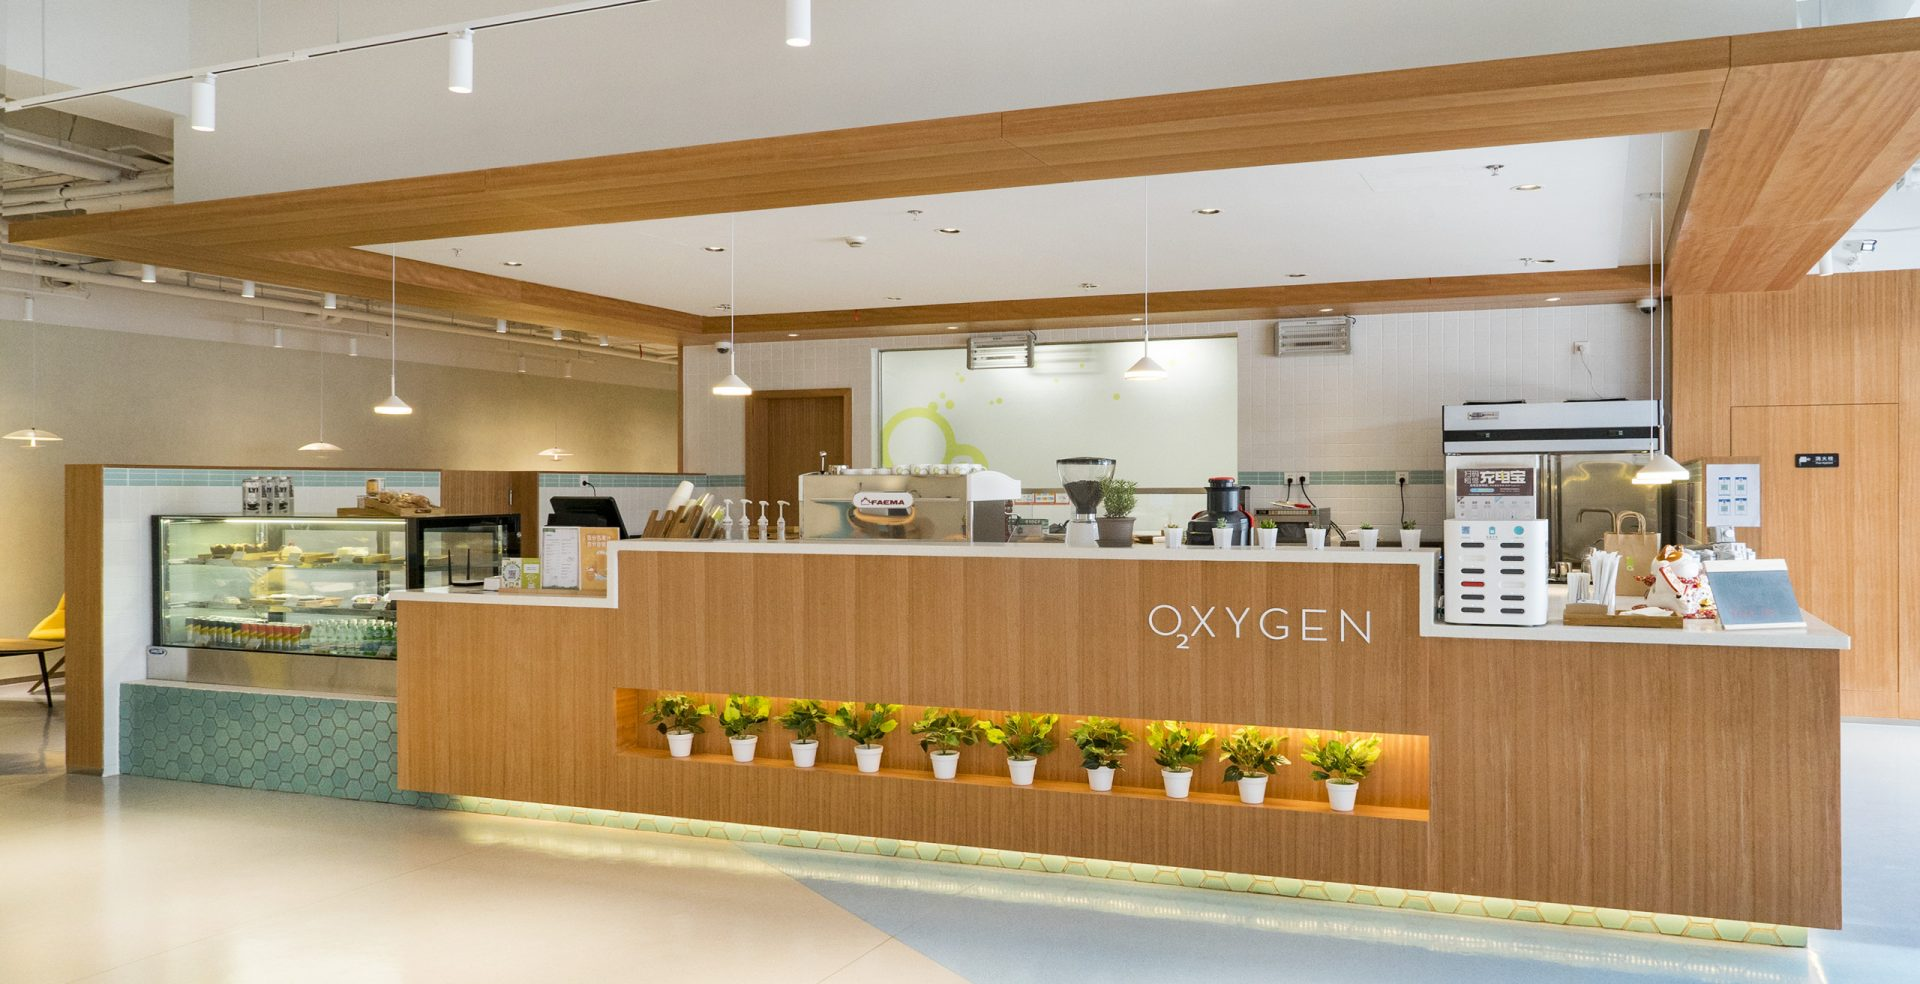 oxygen cafe workspace cafe aden quality of life solutions